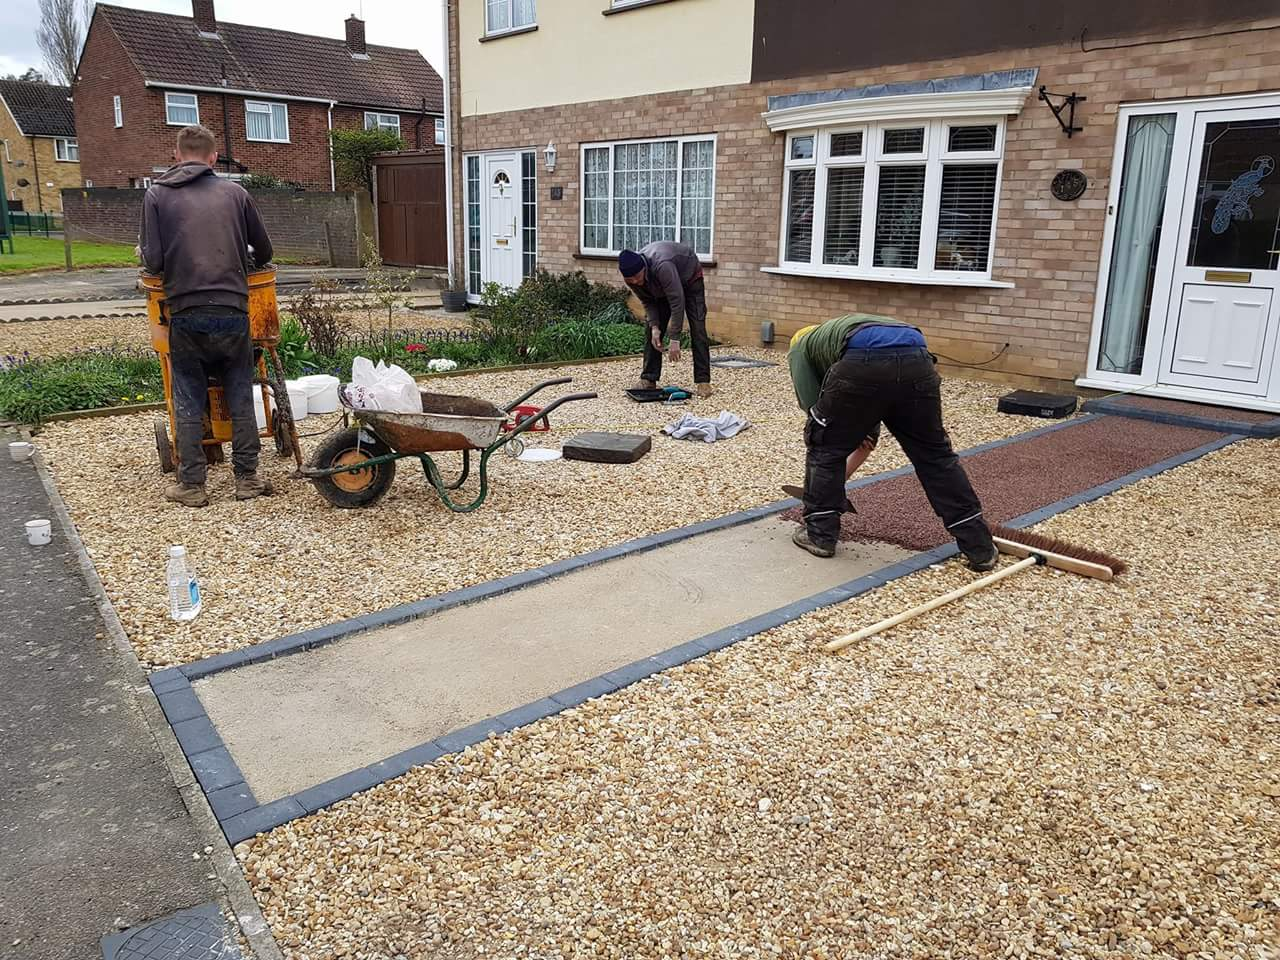 Resin Being Trowelled onto Path